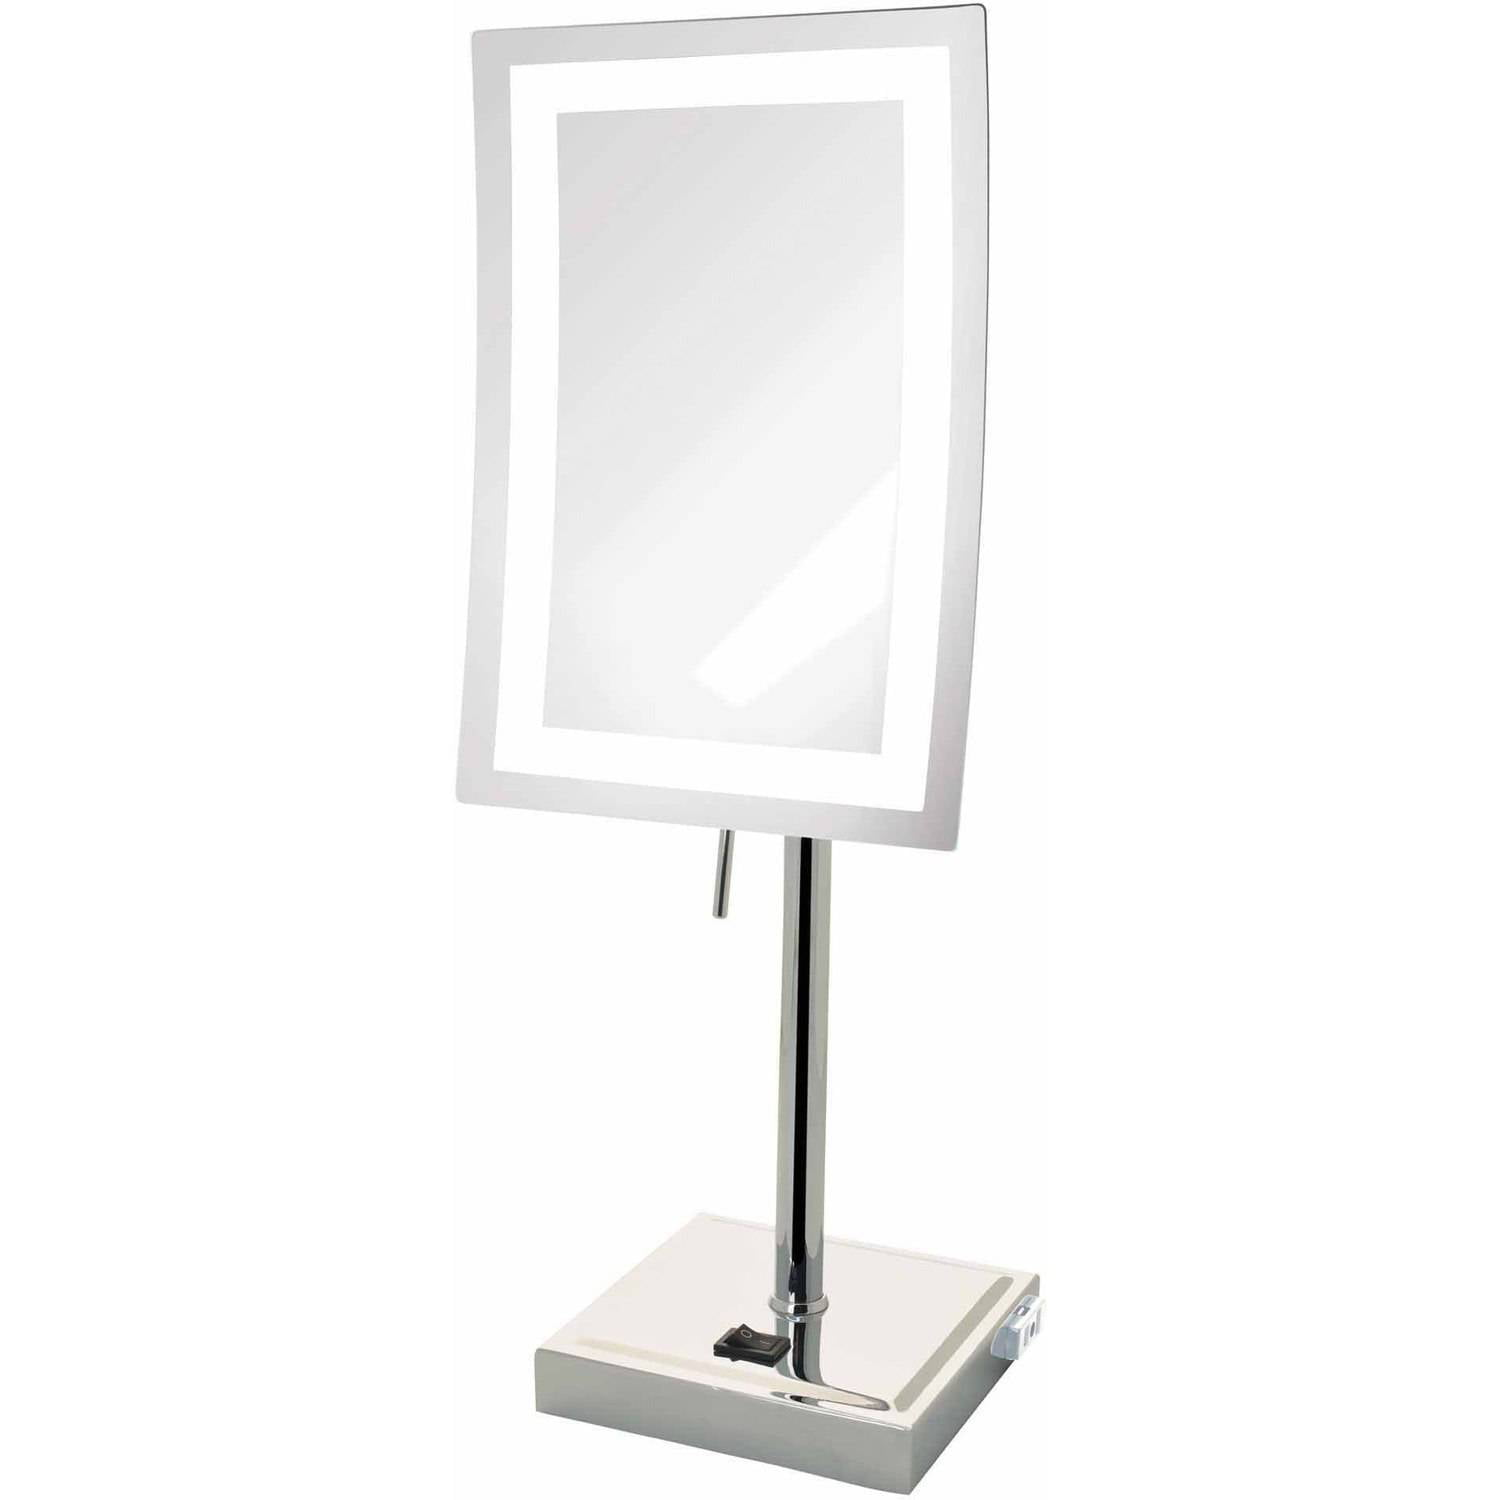 Jerdon JRT910CL Magnified Lighted Tabletop Rectangular Mirror, Chrome Finish, 67.2 oz by JERDON STYLE LLC